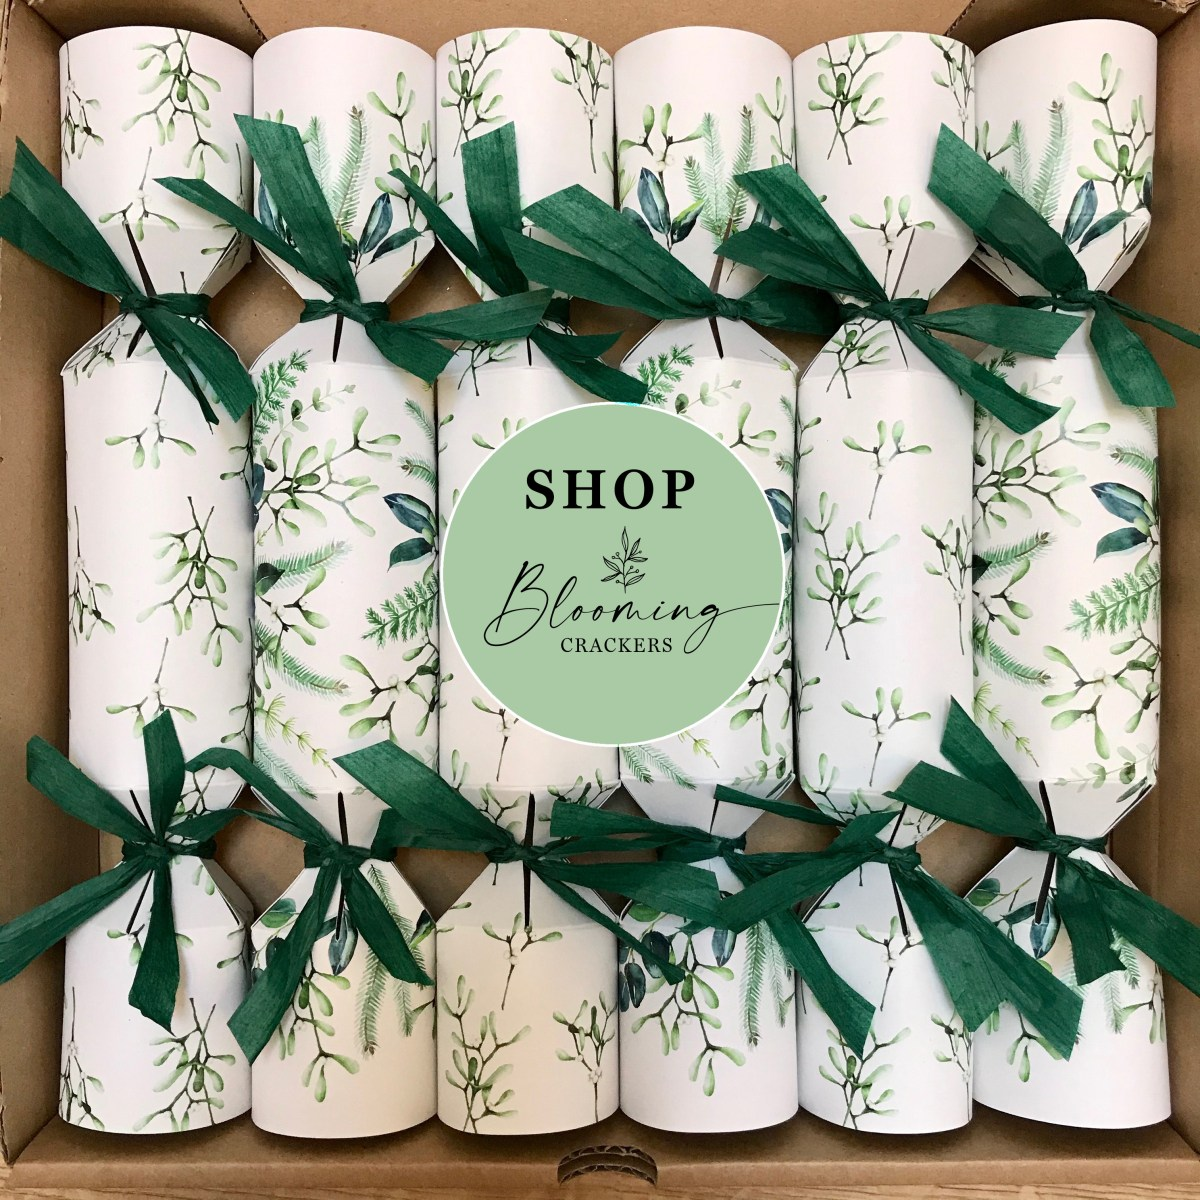 Eco Friendly Christmas Crackers - Blooming Crackers - Plastic Free - Sustainable - Recycled - Seed Packet Gifts - UK